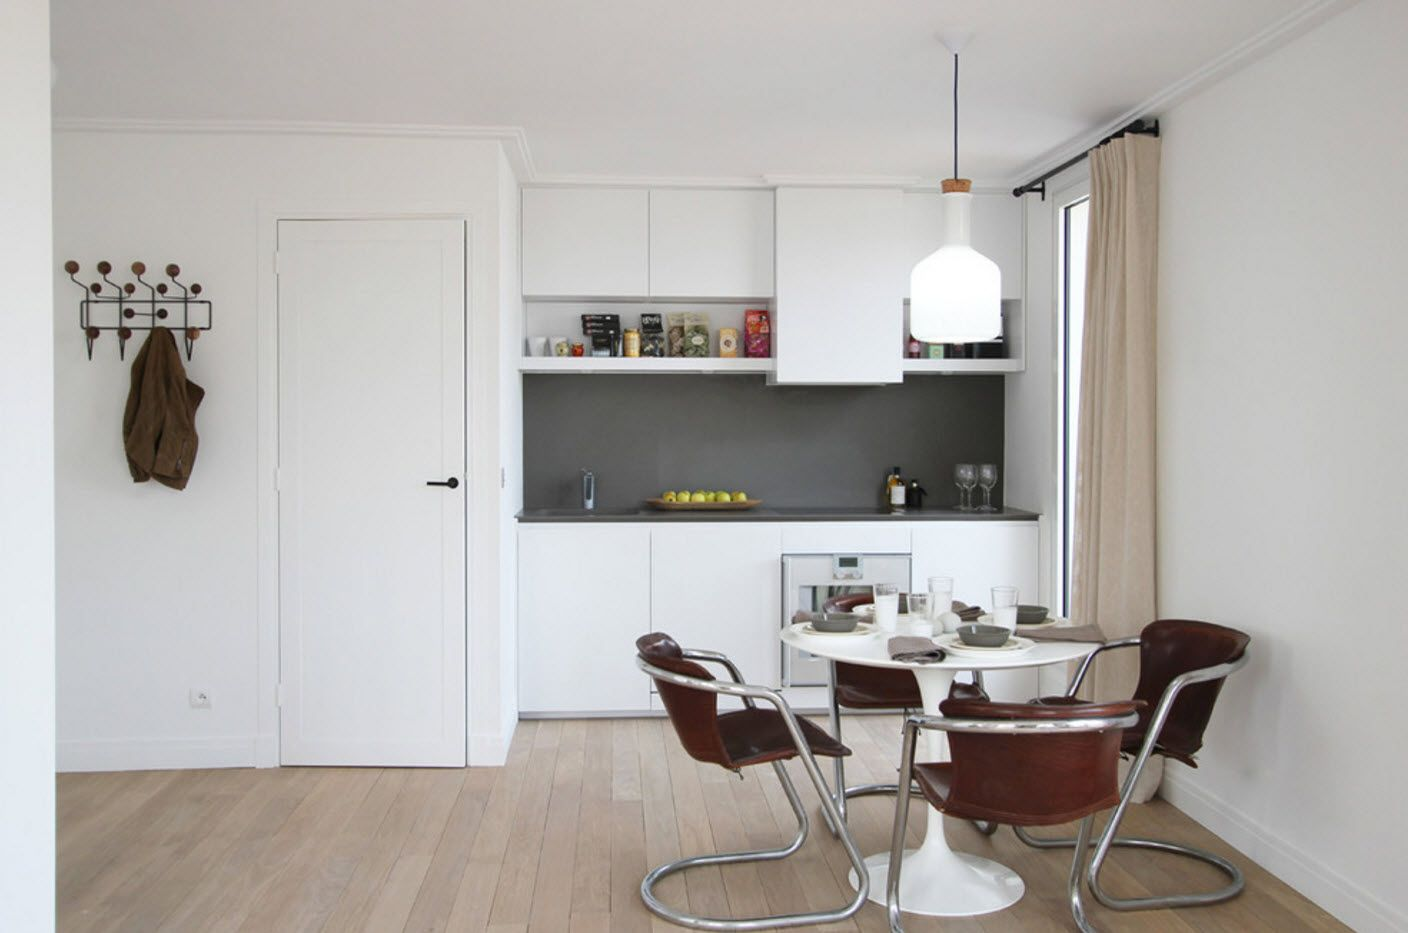 white kitchen facades and dining zone